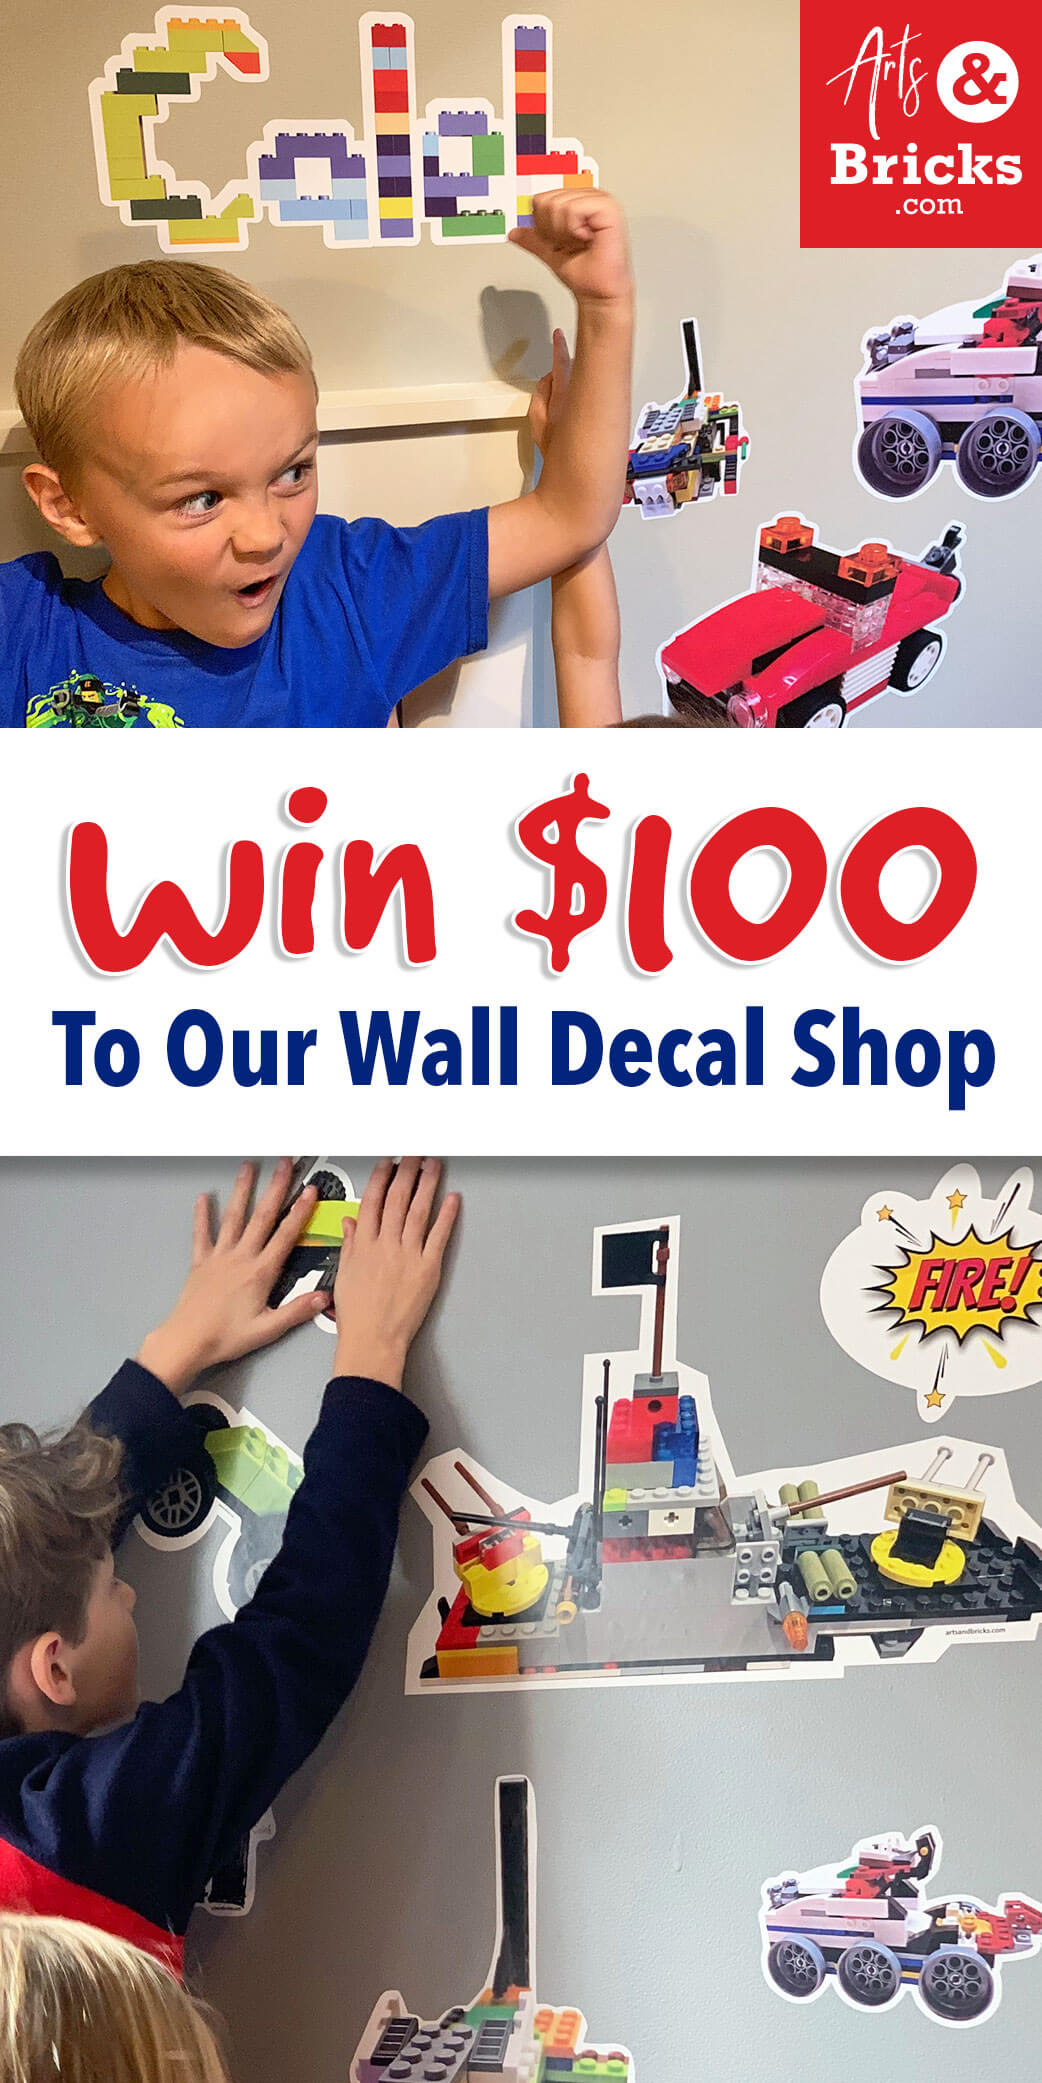 Enter to win $100 to ArtsandBricks.com Wall Decal Shop. Featuring kids's wall vinyl decals and stickers -- even designs your own kids make. Name stickers, subscriptions, pre-made designs and custom designs. #artsandbricks #giveaway #entertowin #walldecor #forkids #legoroom #lego #kiddrawn #brickbuilt #wallstickers